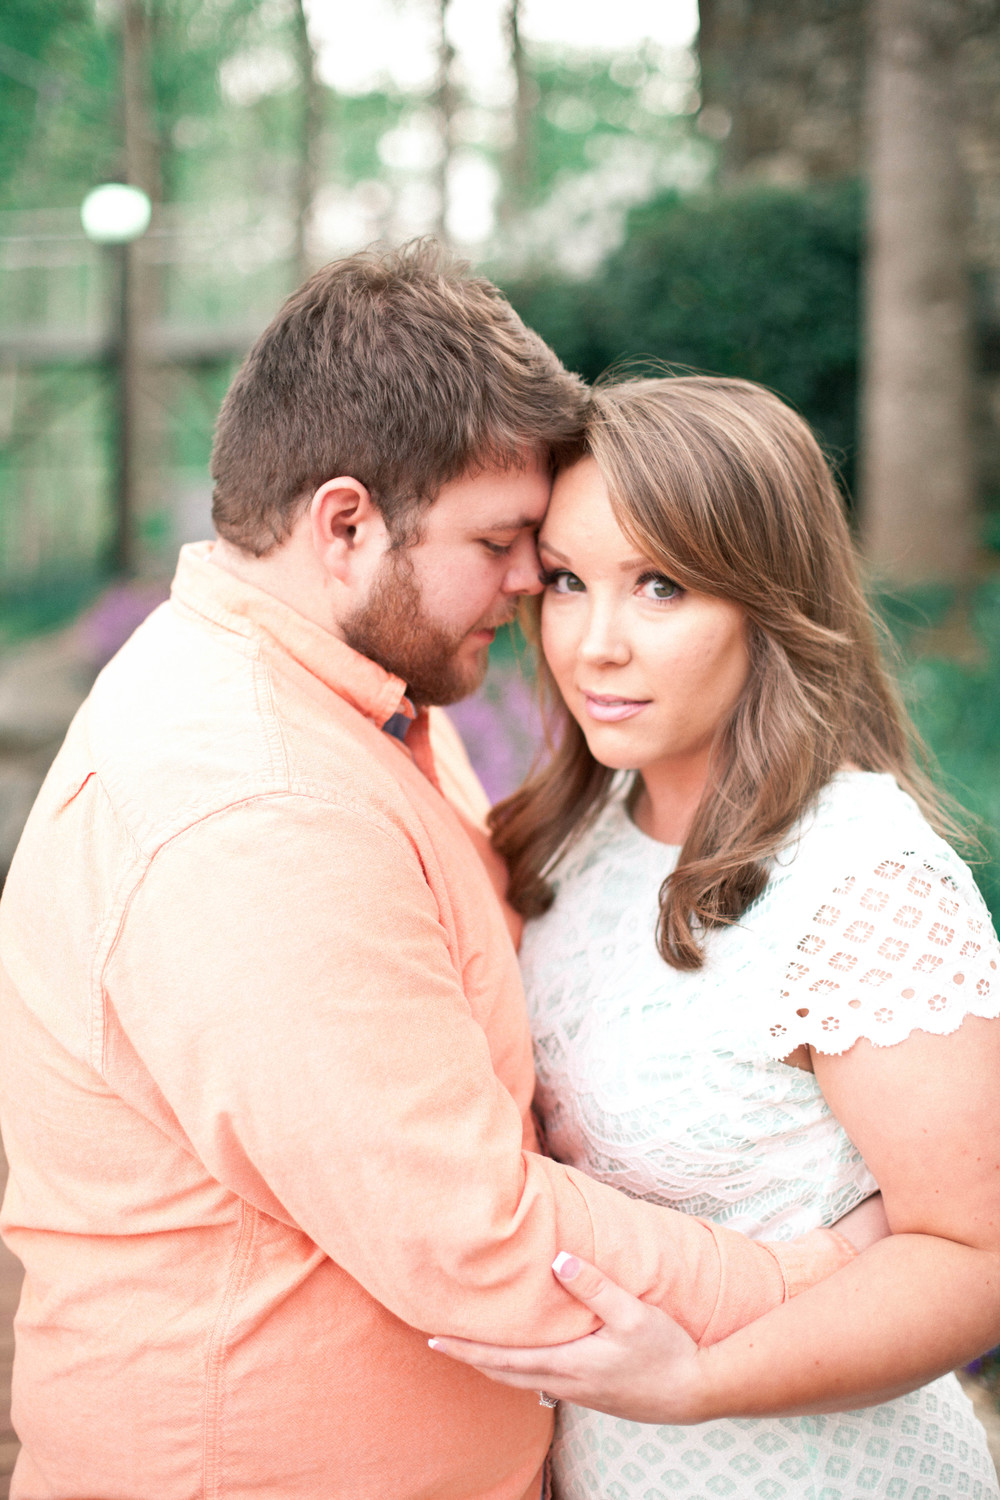 zach_gabbie_engagement_poured_out_photography-28.jpg